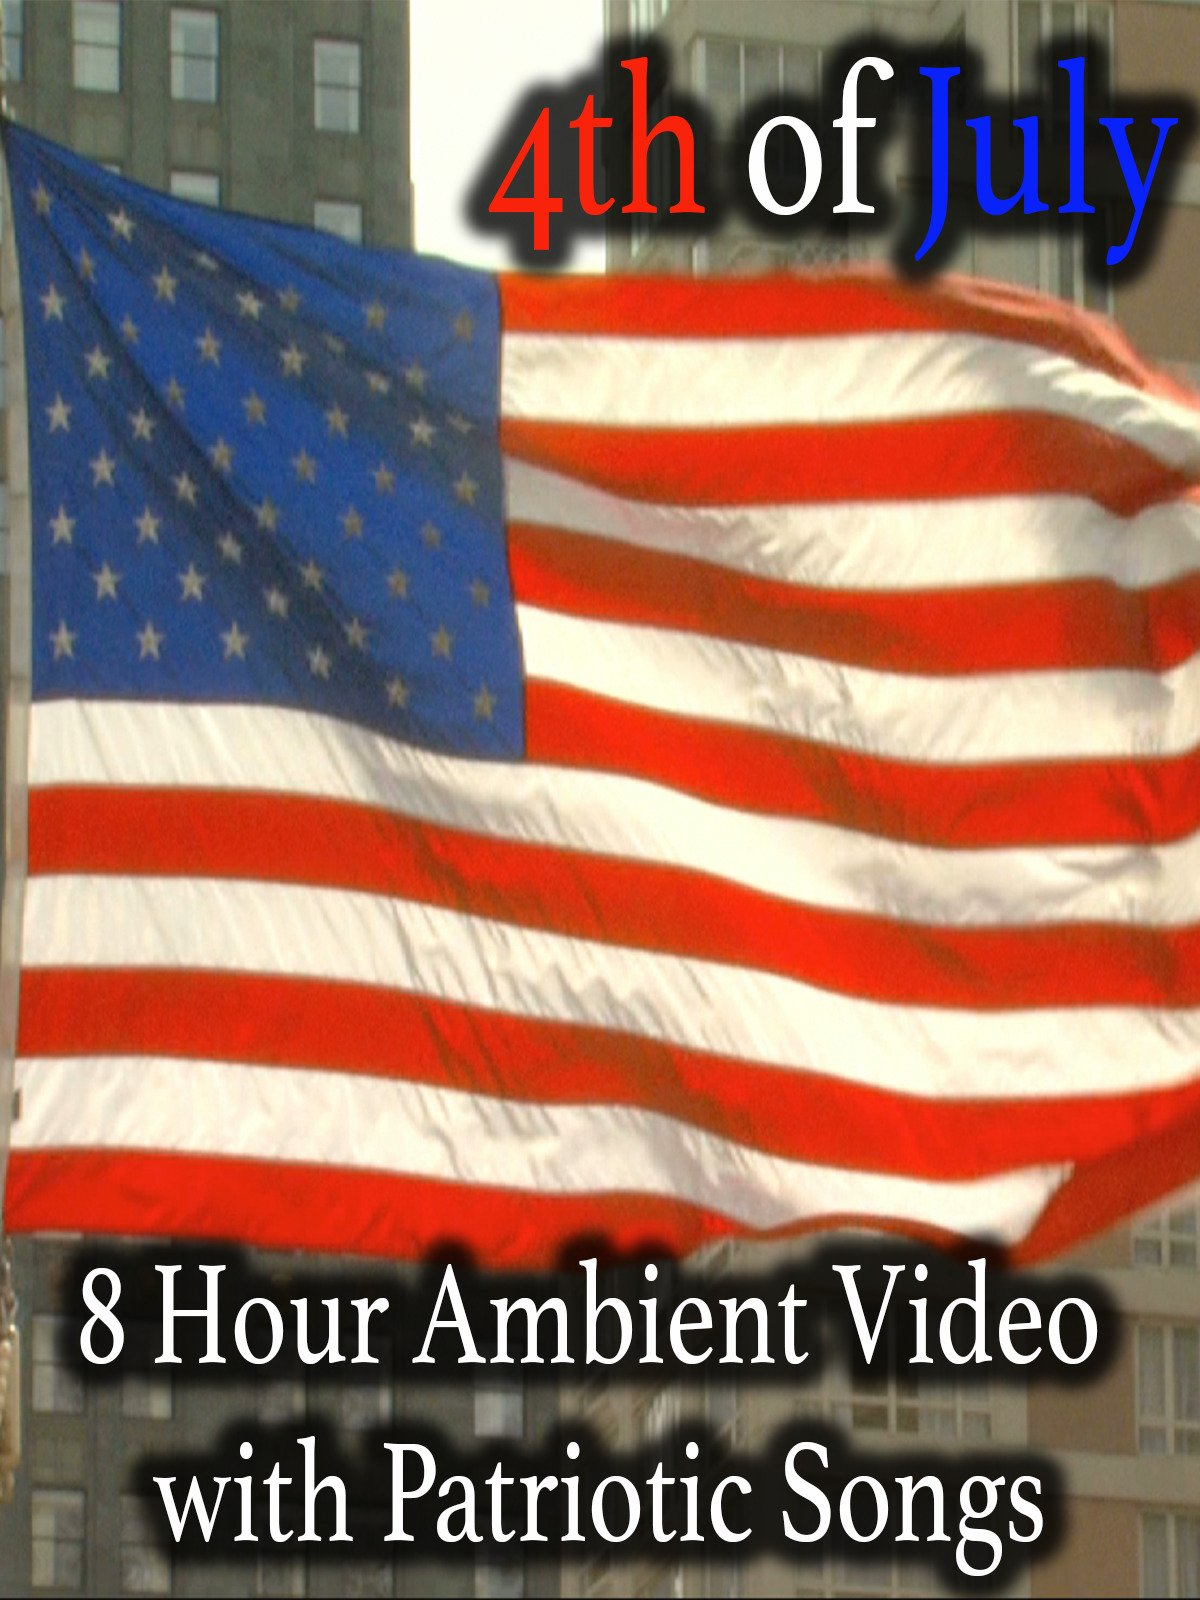 4th of July 8 Hour Ambient Video with Patriotic Songs